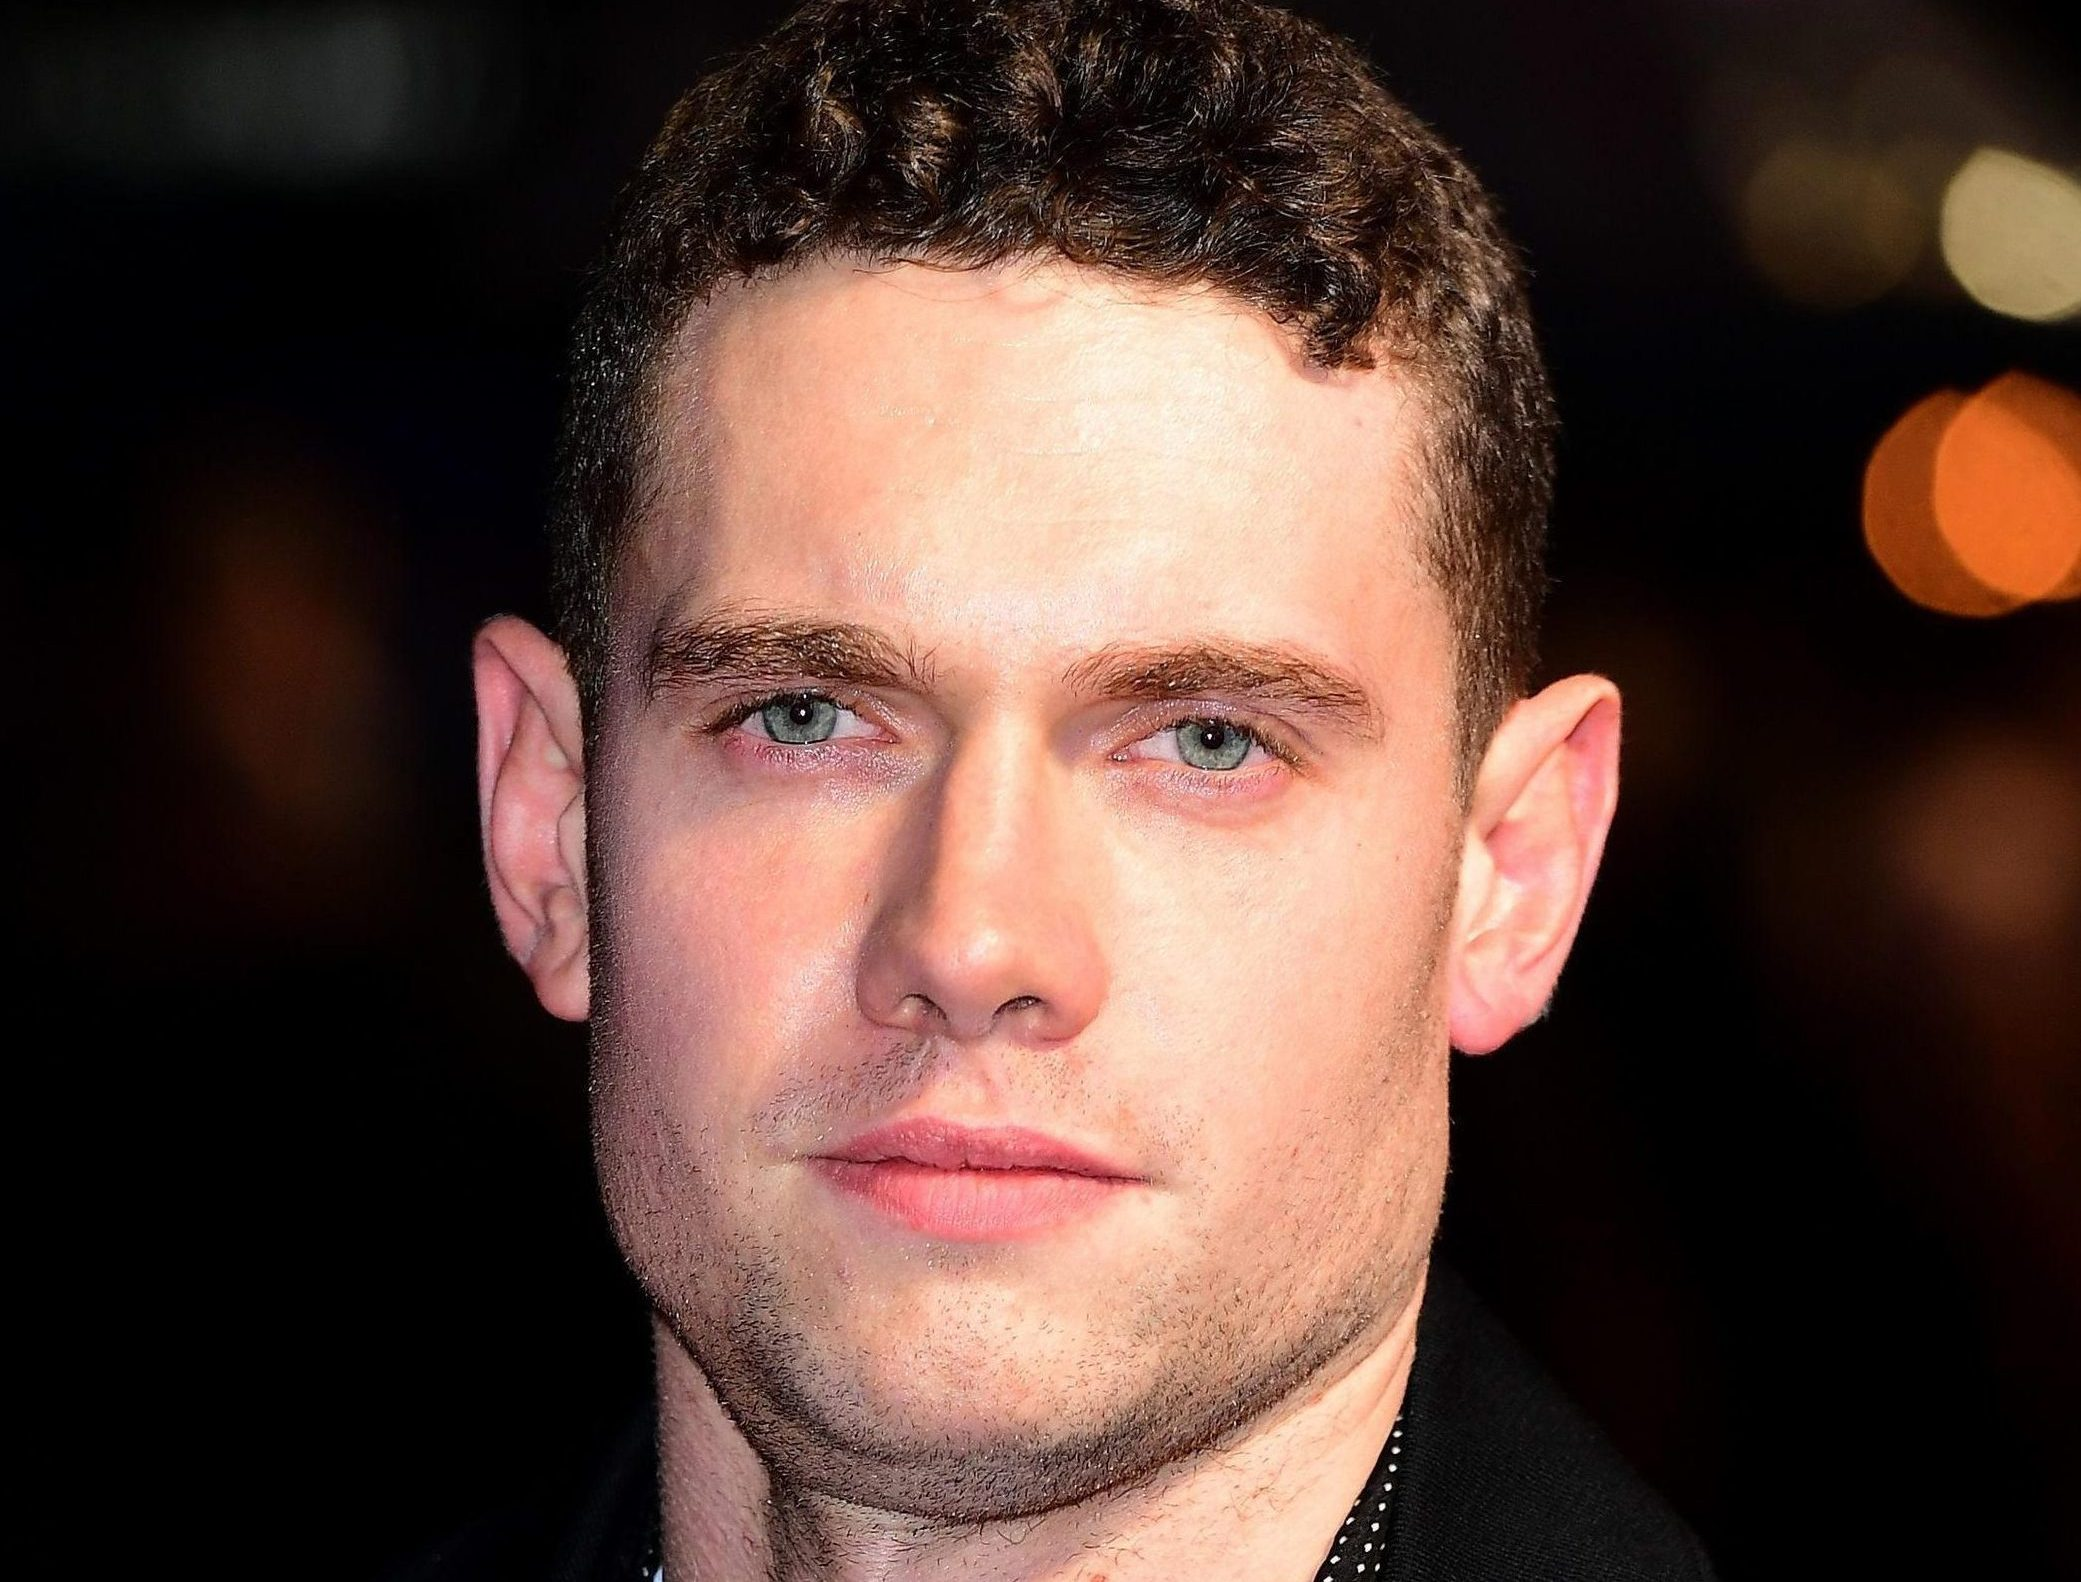 Who is Tom Brittney dating, who does he play in Grantchester and what else has he been in?